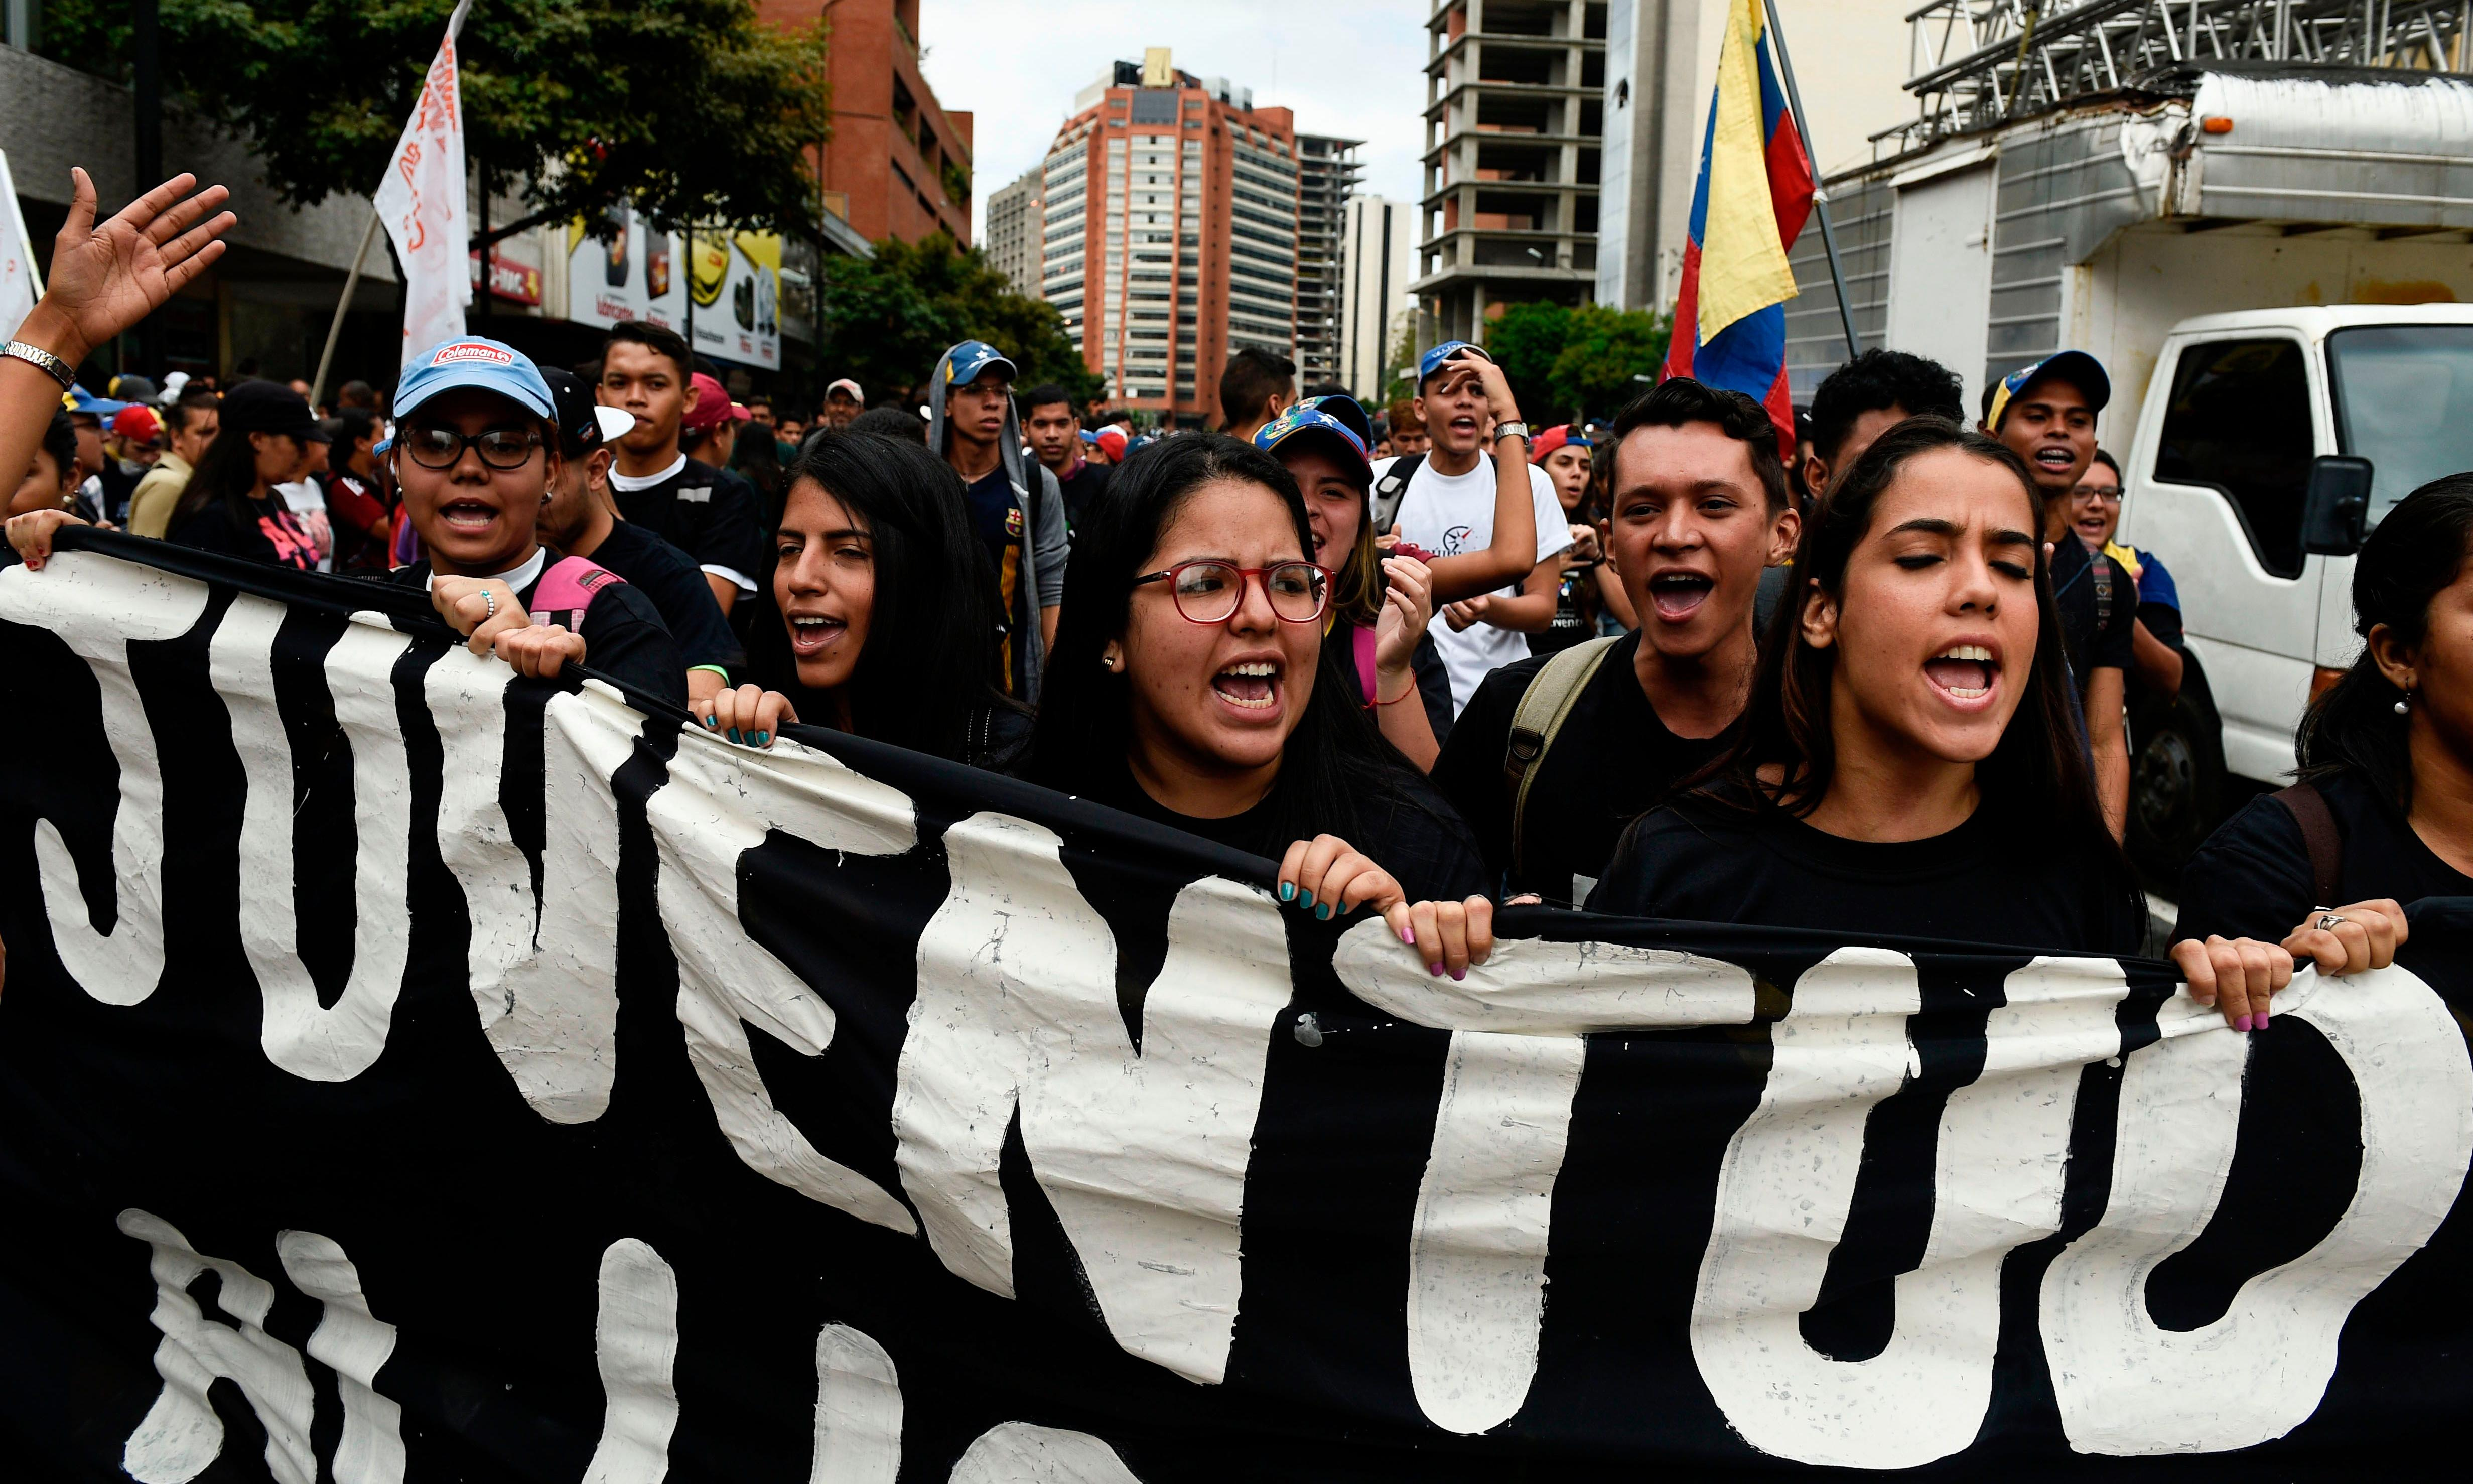 Venezuela protests: thousands march as military faces call to abandon Maduro